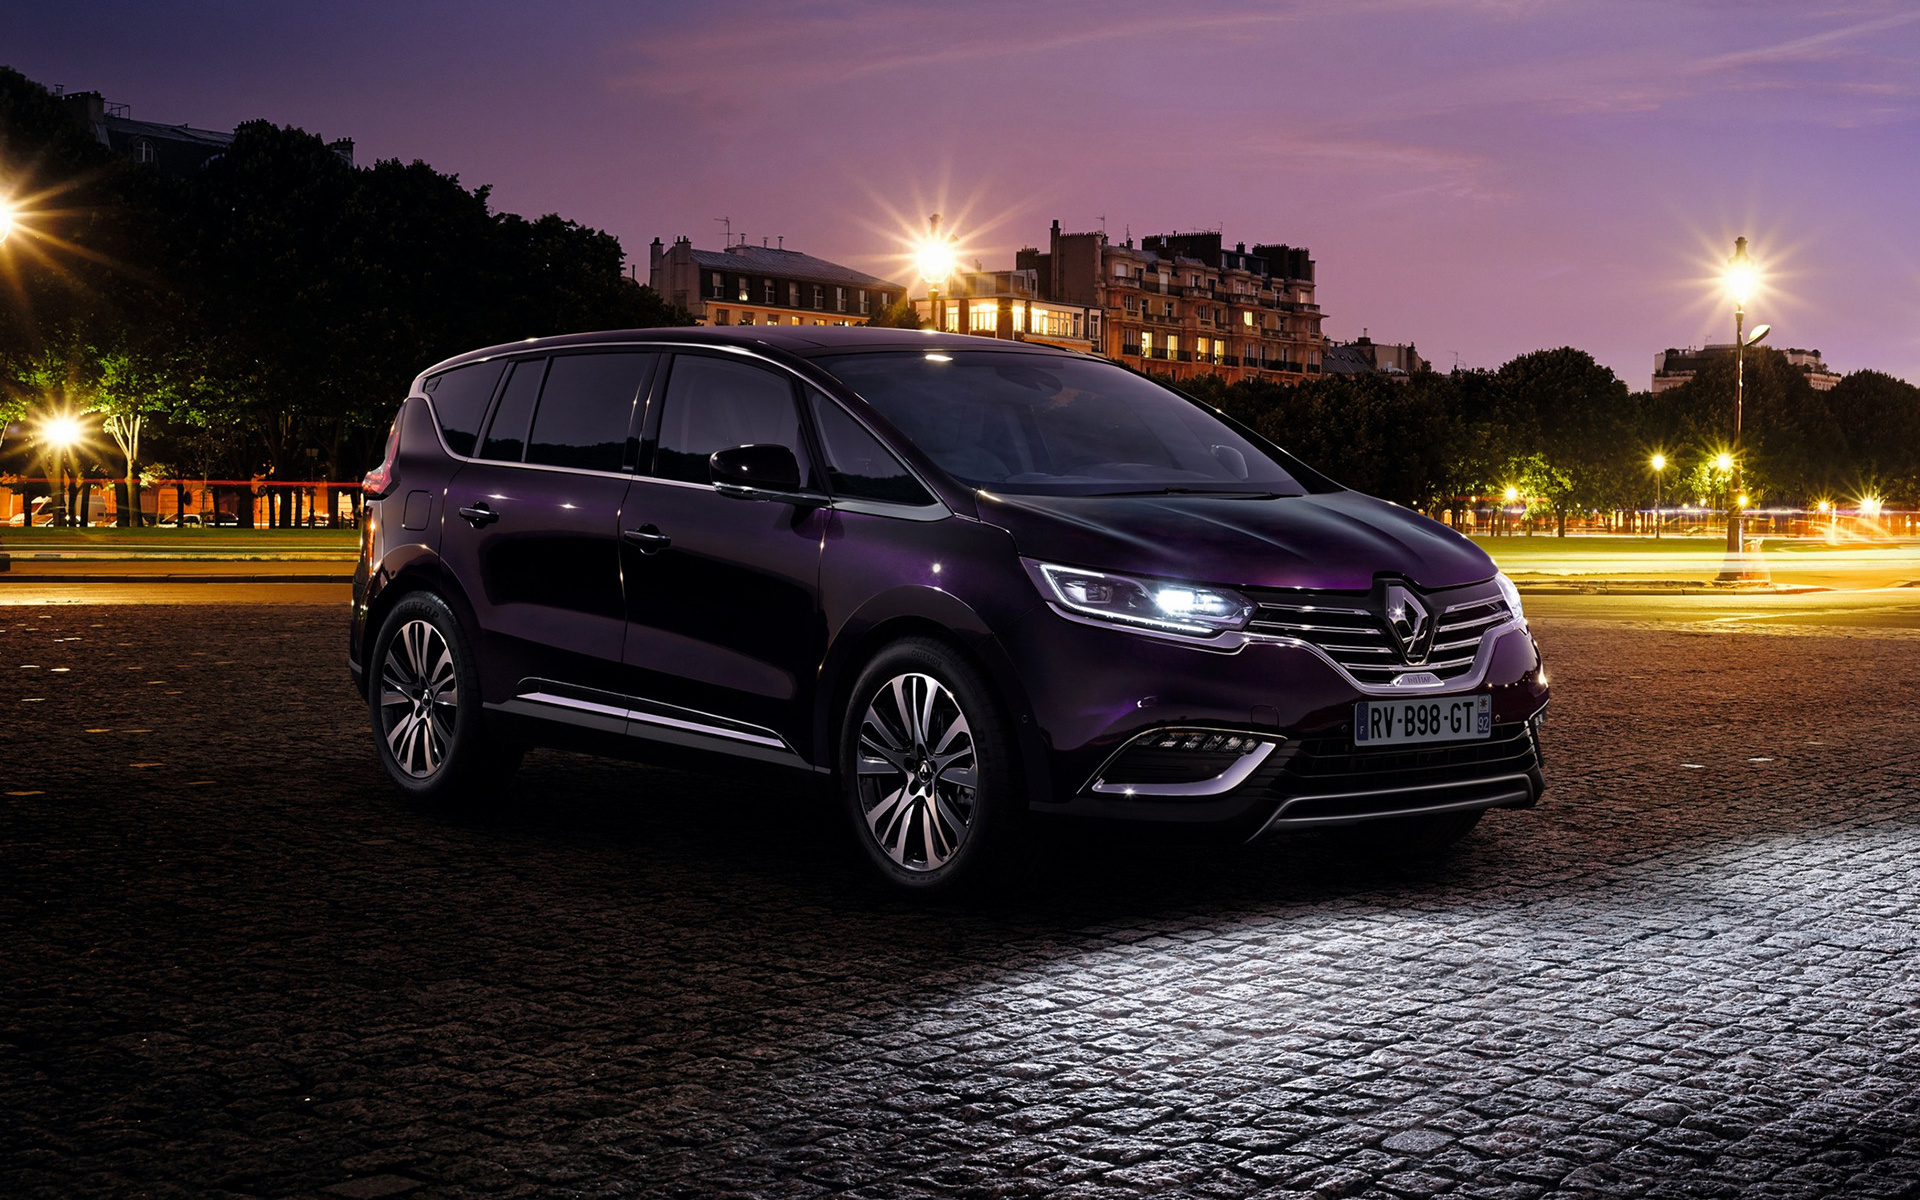 Renault Espace Initiale Paris (2015) Wallpapers and HD ...